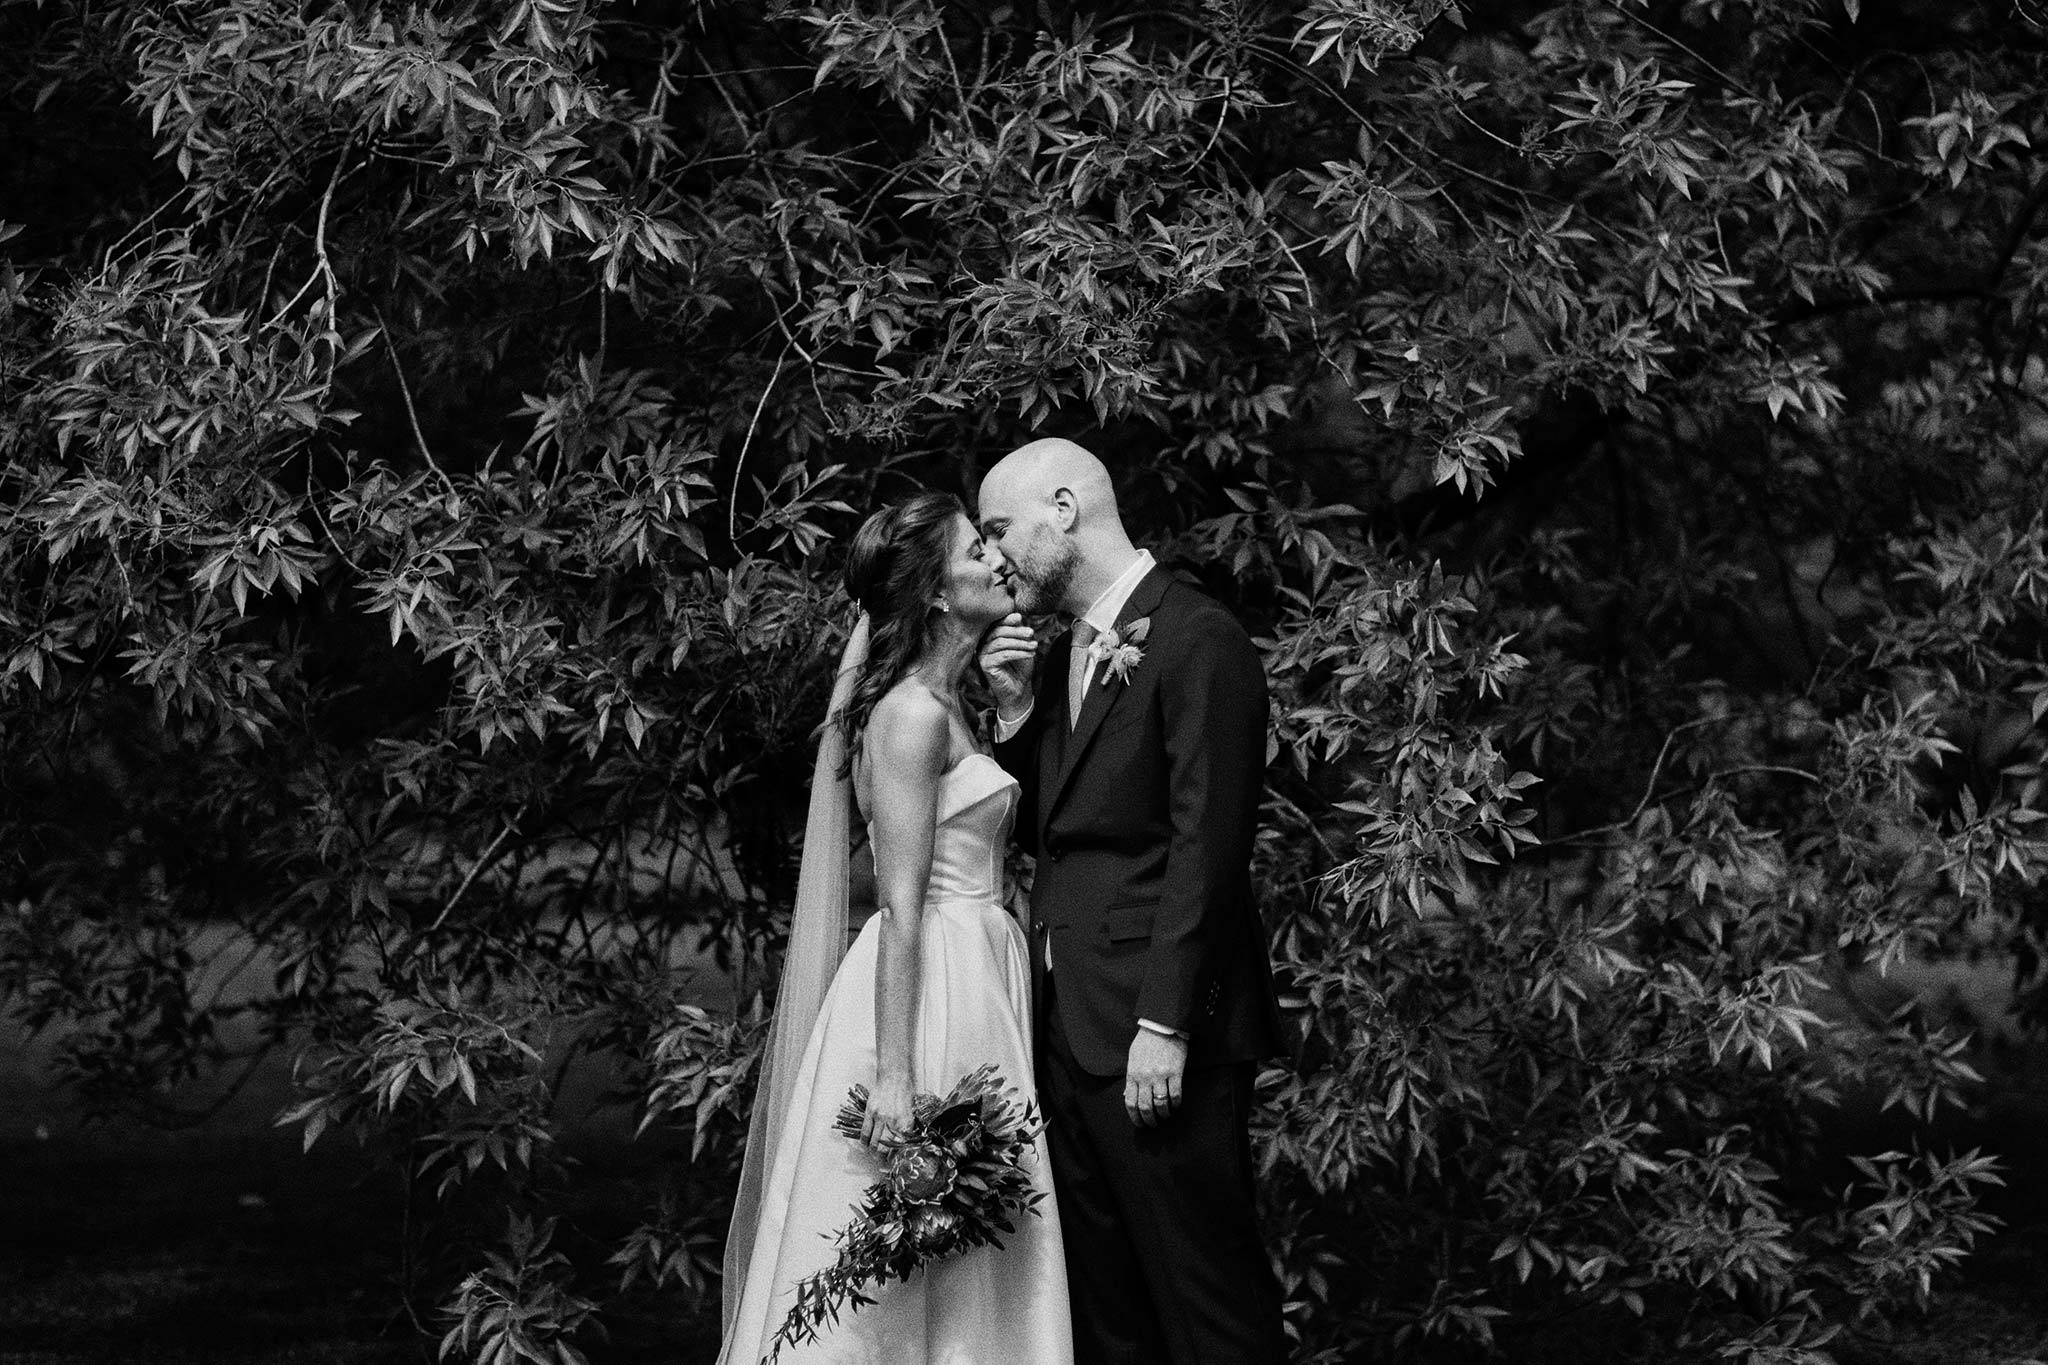 Melbourne Royal Botanical Garden Wedding Ceremony Portrait bride groom tree kiss